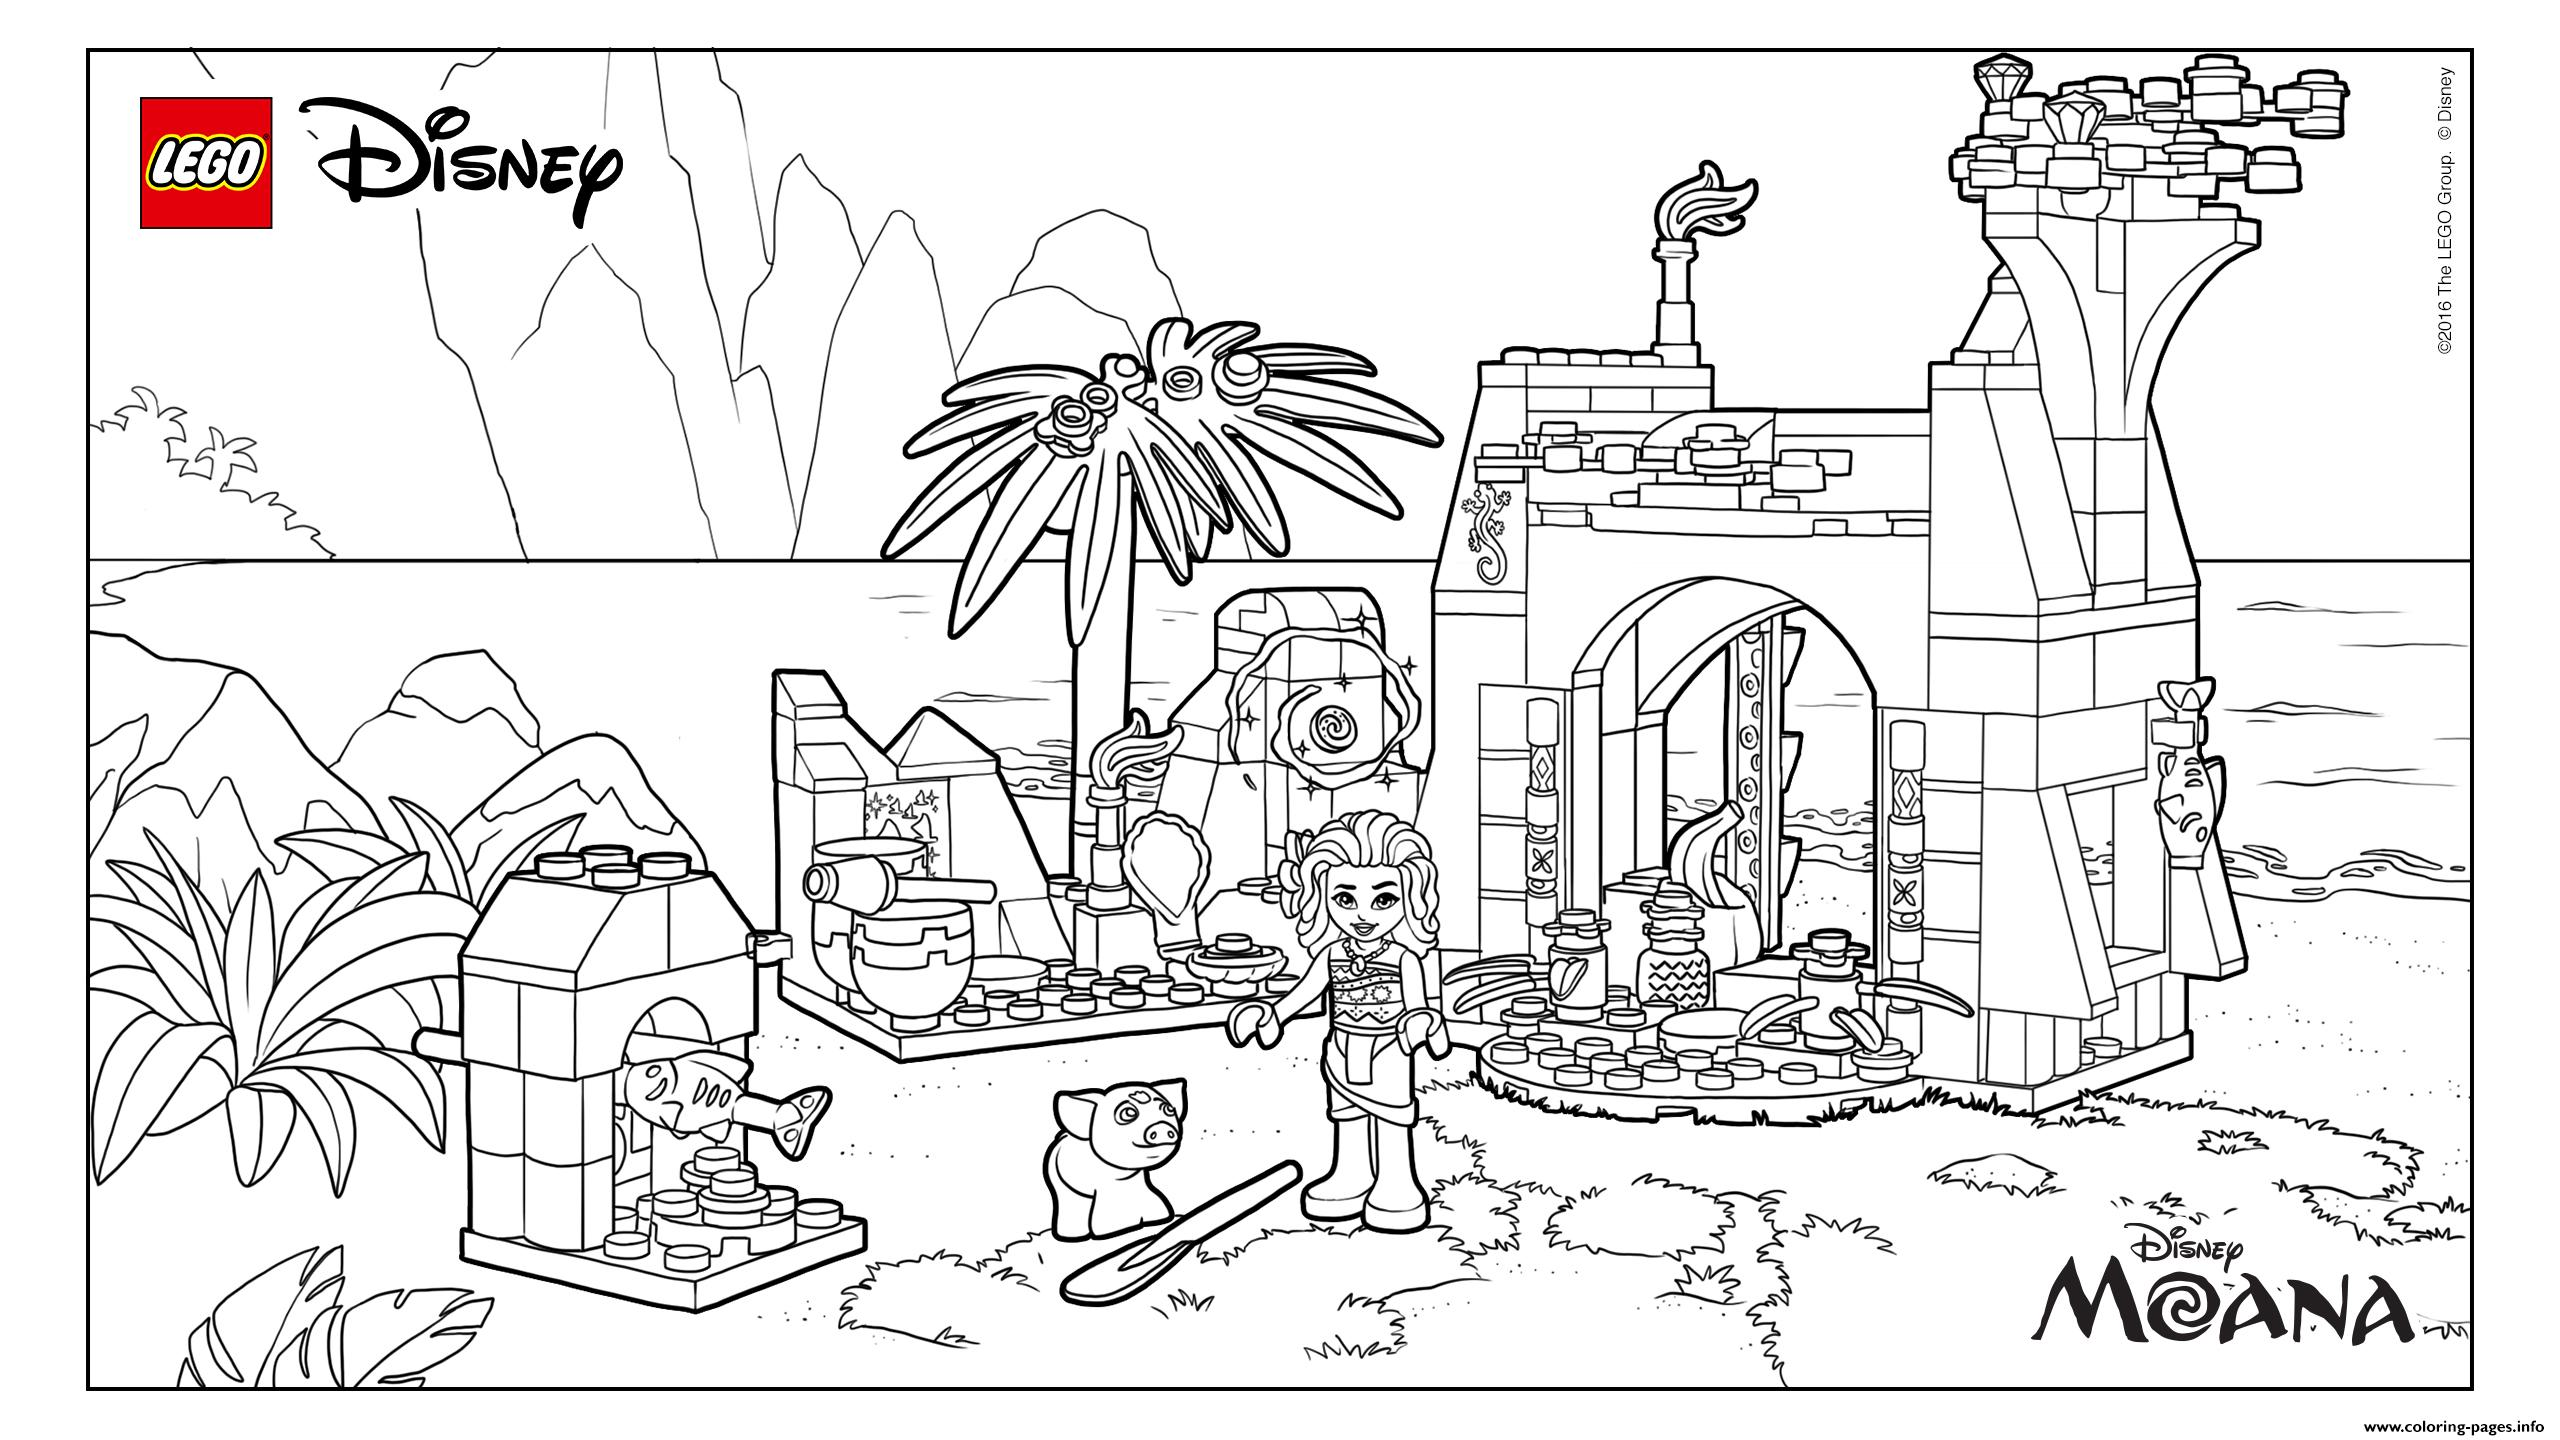 LEGO Disney Moana Island coloring pages